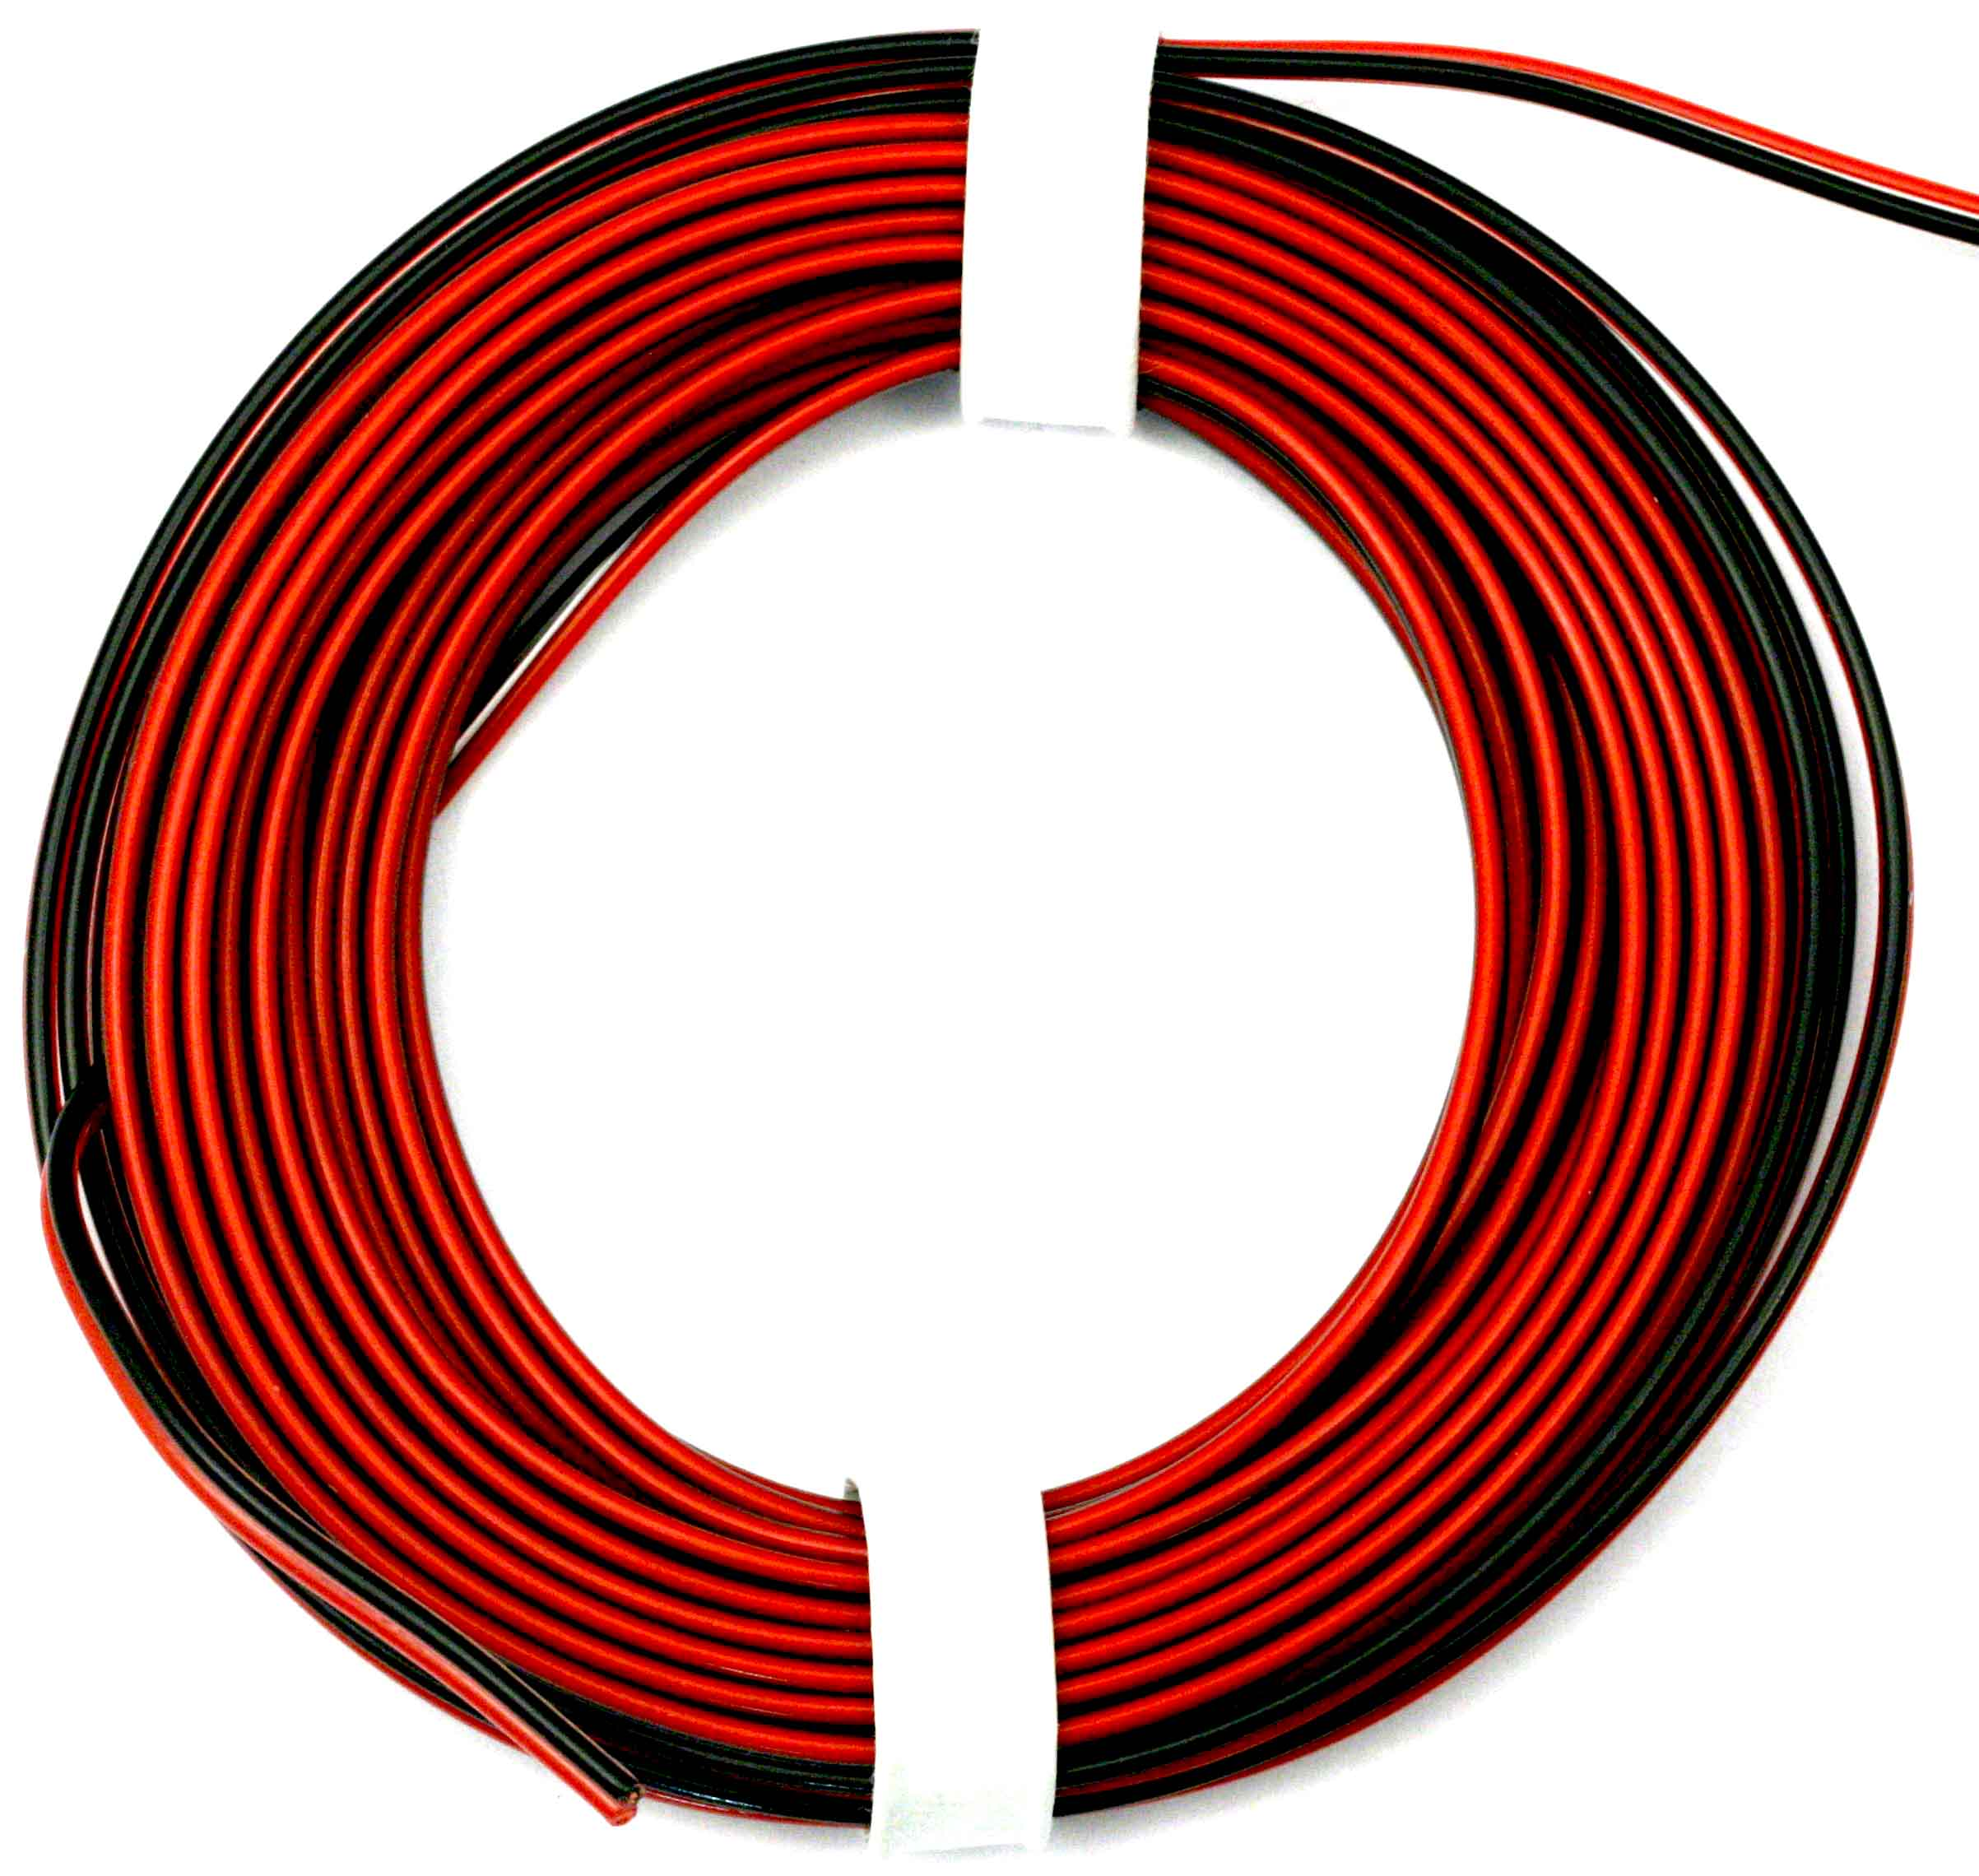 Cabel PVC 2 x 0.25 mm2 (5 m) red-black